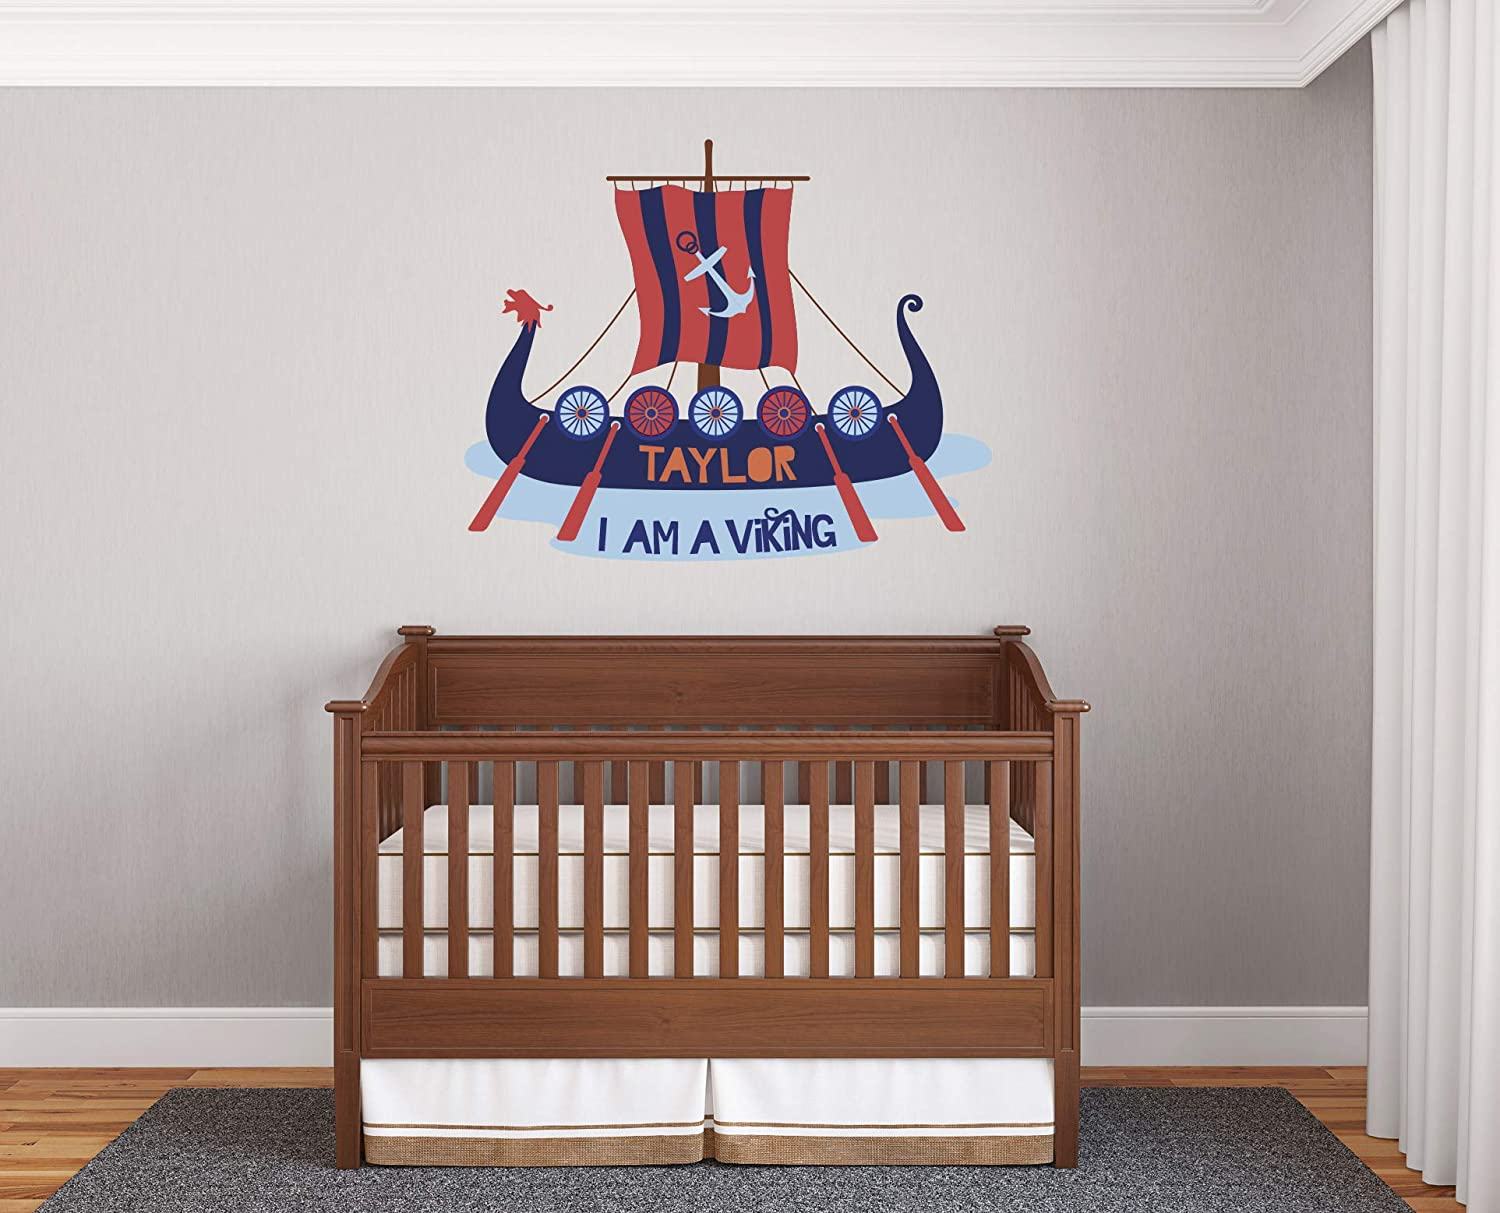 Custom Viking Ship Wall Decal for Viking Themed Nursery